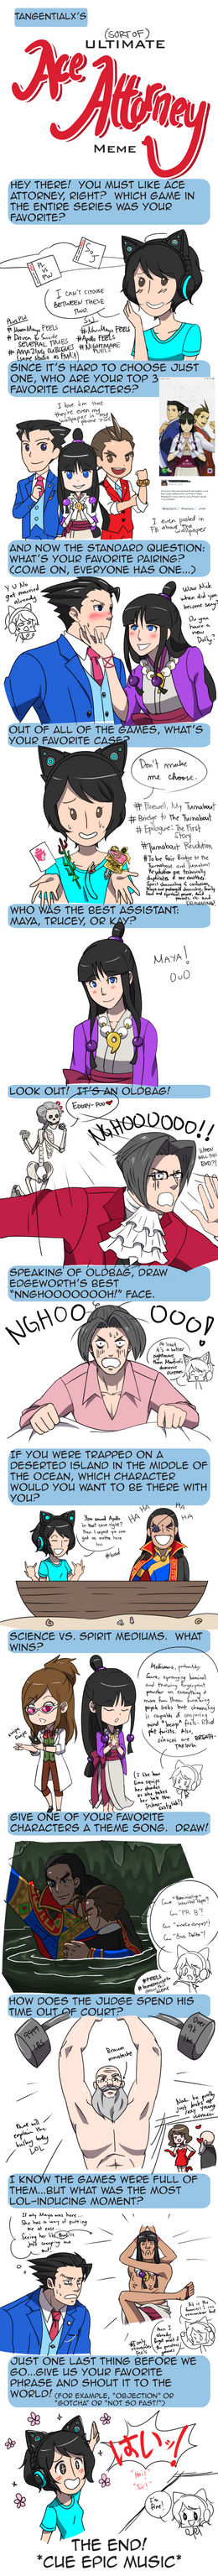 [SoJ SPOILERS] Ultimate Ace Attorney Meme Answered by NaitomeIya